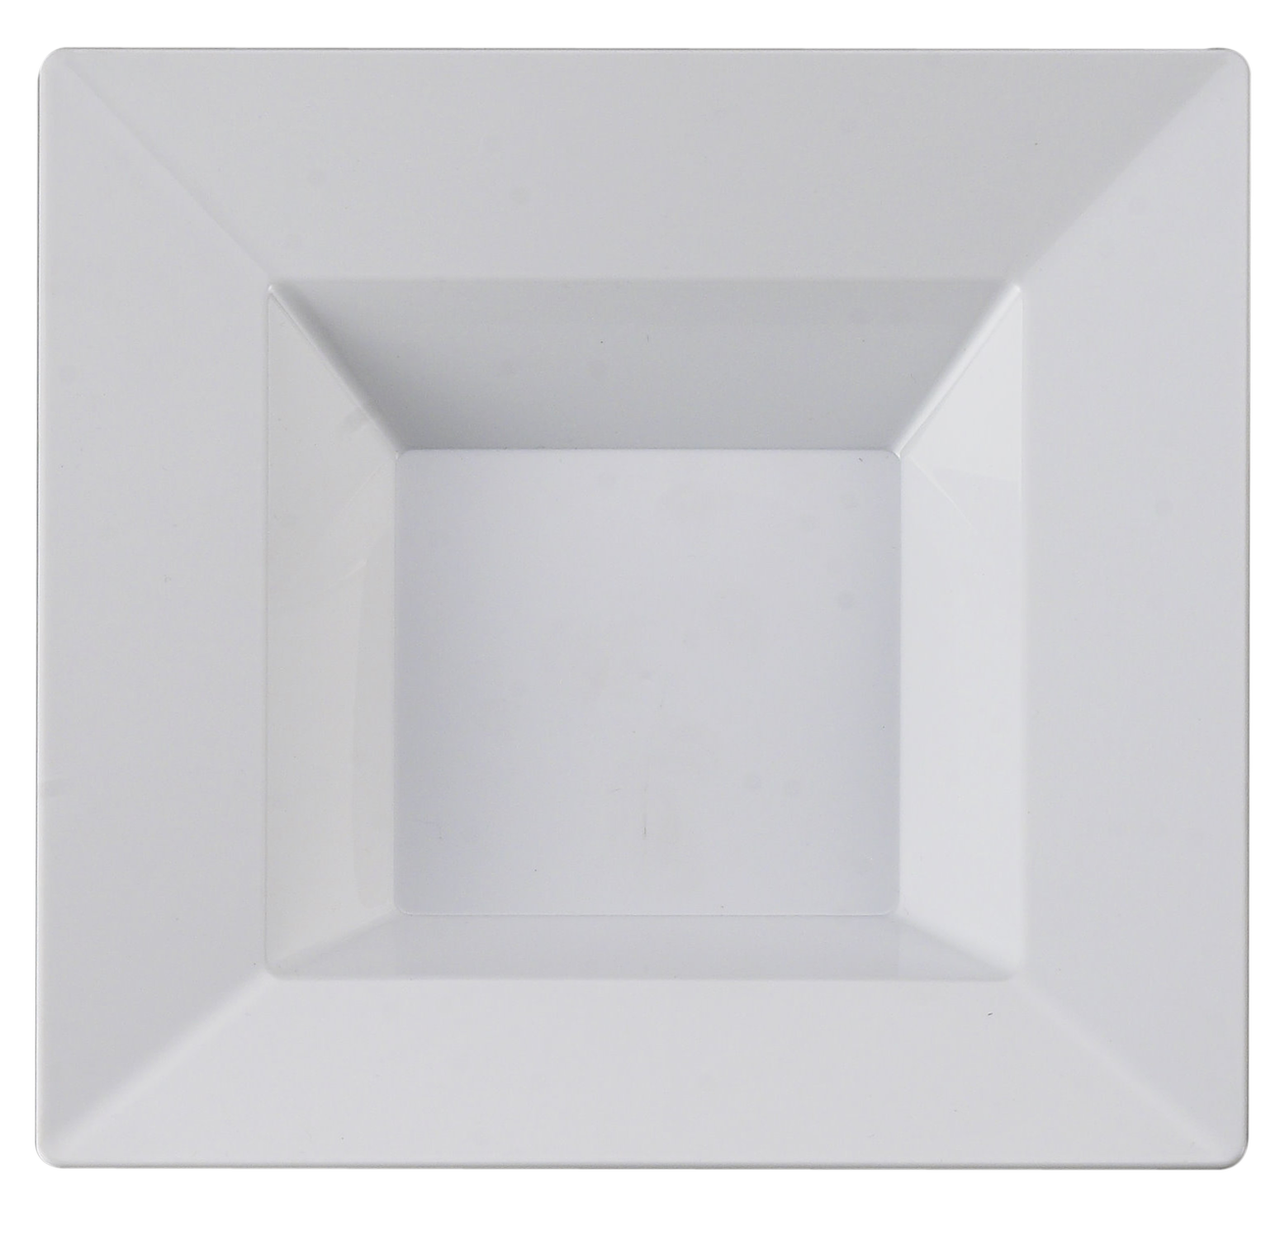 Kaya Collection - White Plastic Square 5oz Dessert/Appetizer Bowls - Disposable or Reusable - 2 Pack (20 Bowls)